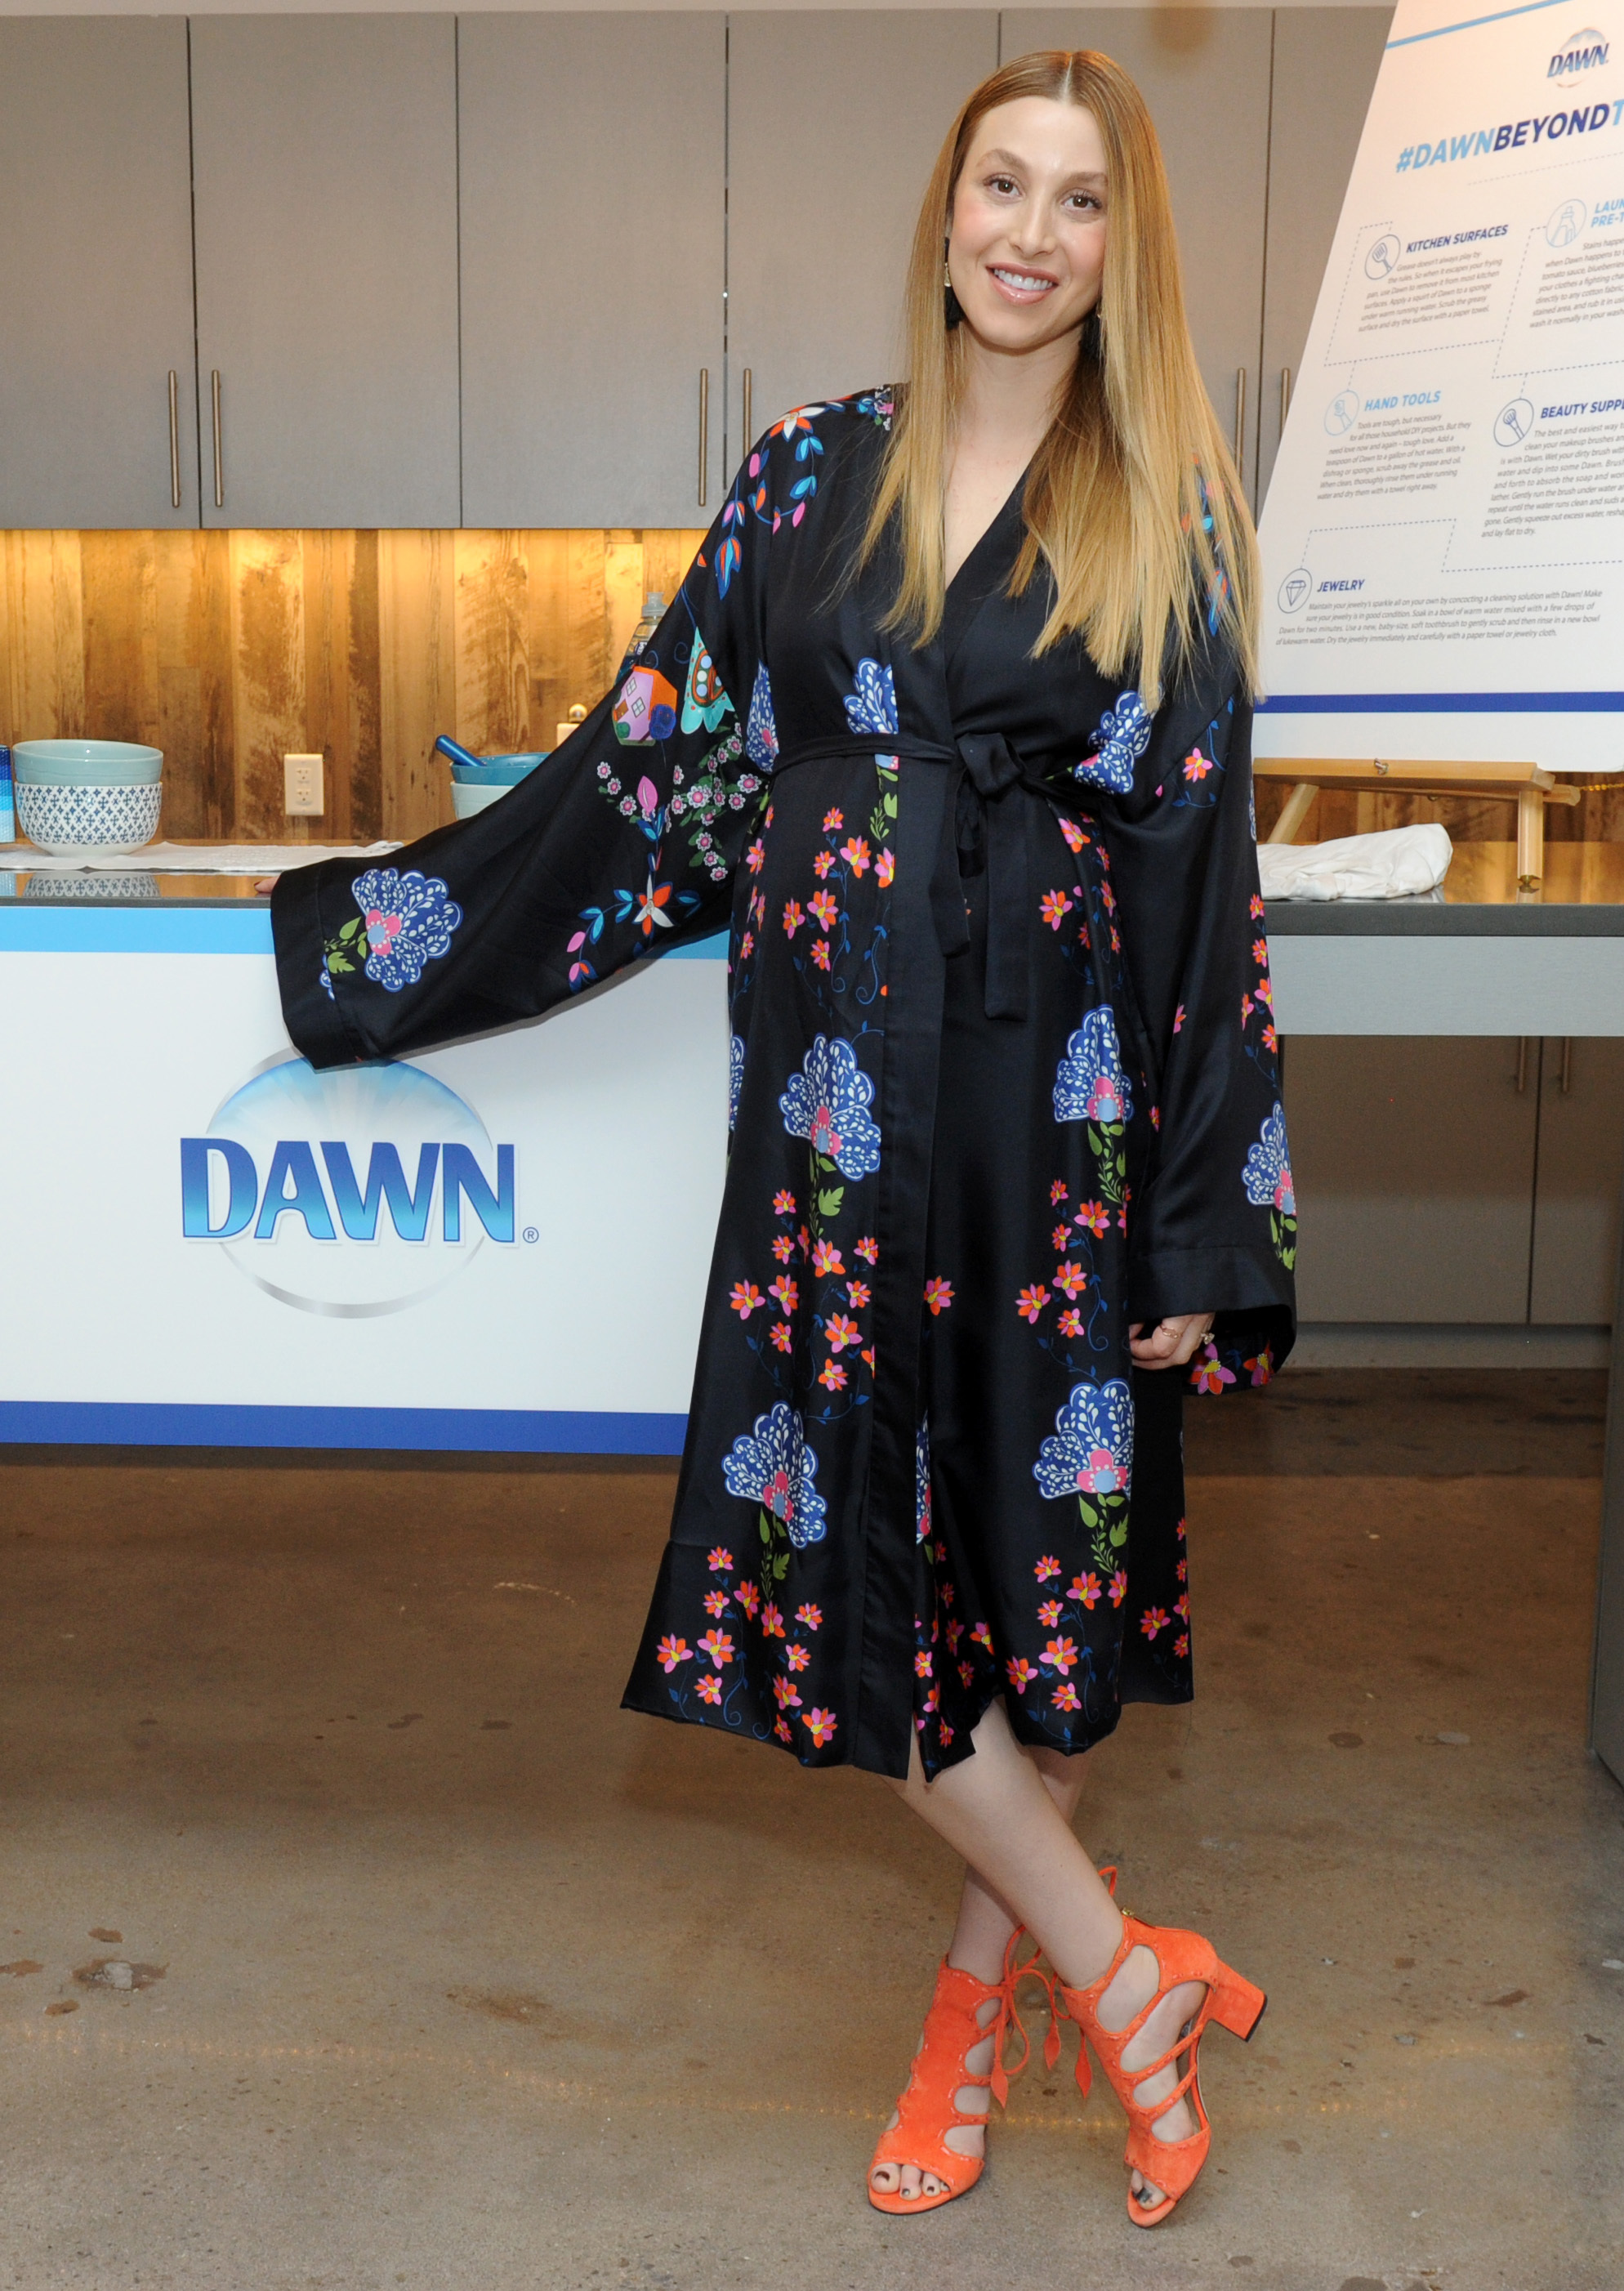 Whitney Port shares her top home life hacks and the many ways to use Dawn dish soap in the kitchen and beyond at an event in New York City on May 9, 2017.